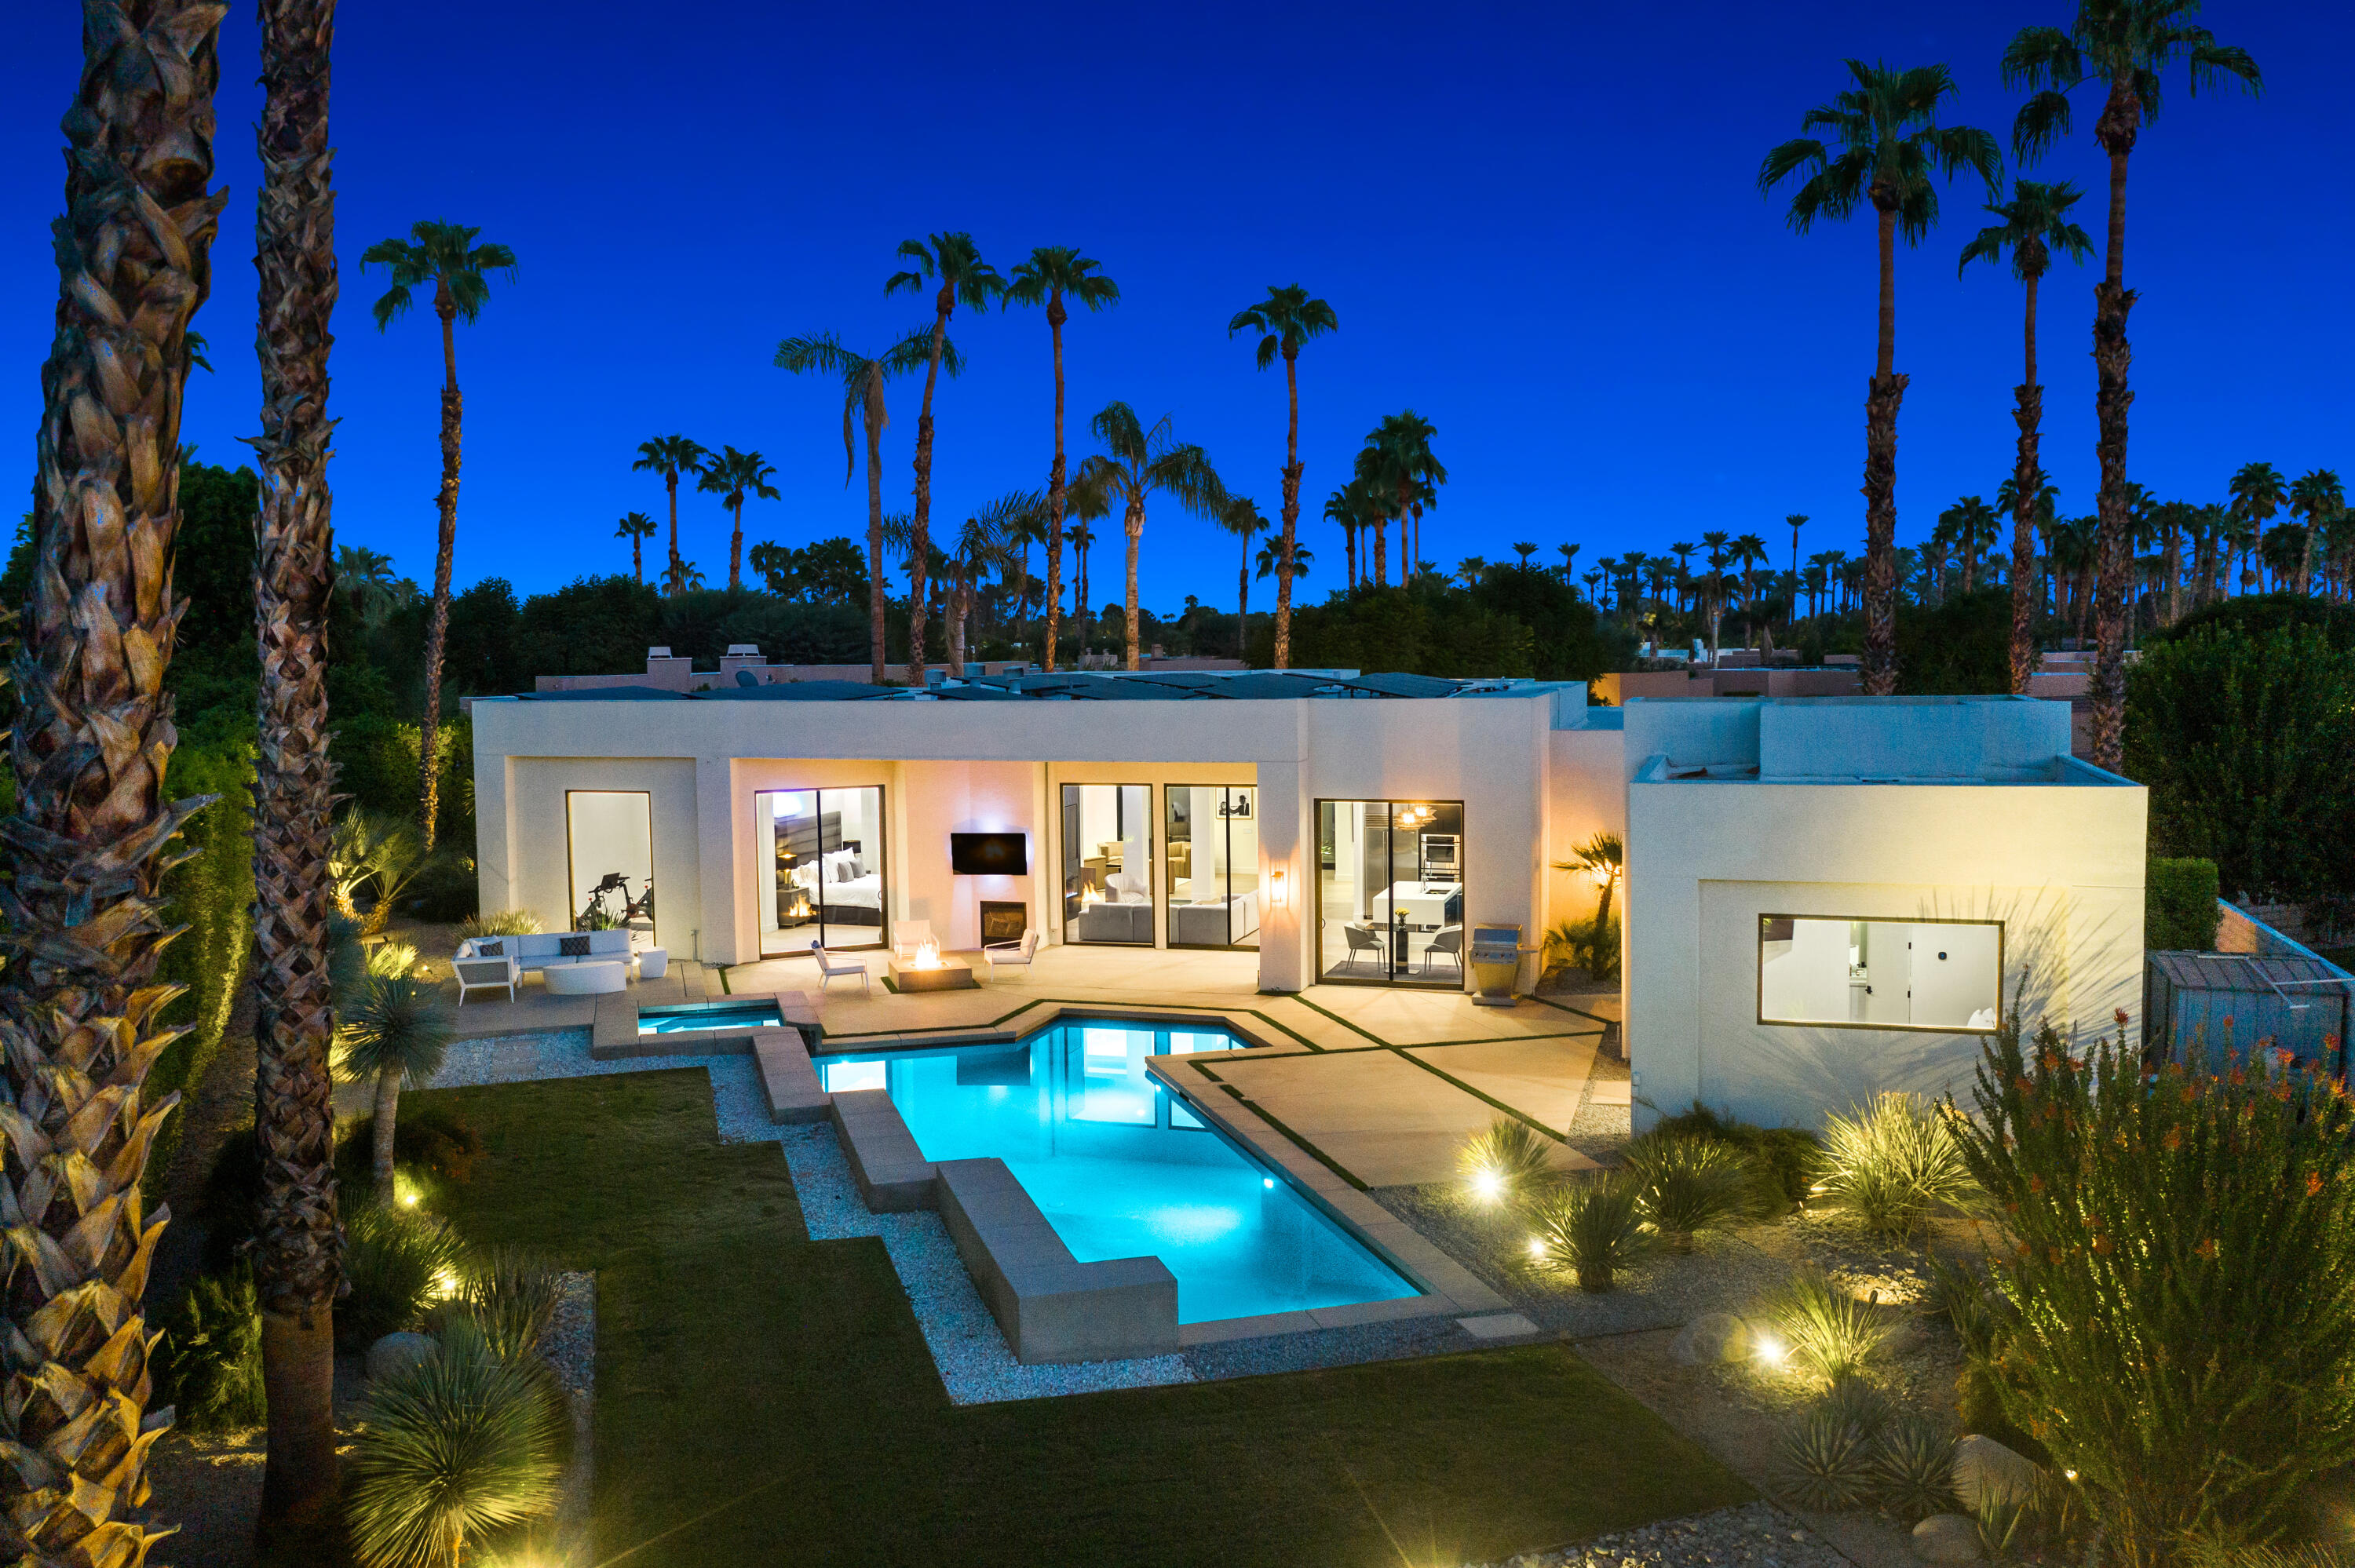 Located in the highly desirable Tamarisk area of Rancho Mirage sits Sterling Cove, a private gated community. Built on a large lot at the end of the cul-de-sac. This home has undergone an extensive renovation completed this year. Starting from outside of the property, with painting the exterior and adding custom contemporary gates. The property is on Solar, owned outright. New windows and sliders, along with a complete Whole-home 'Ecowater Systems' Softener + Reverse Osmosis, Owned outright. Enter the home through a dramatic, massive glass pivot entry door met with 'White Oak Engineered Hardwood flooring' throughout. This smart home has a 'Brilliant' control system and All features can be controlled from your smartphone as well. New 4 inch LED recessed lights, wall art-directional art lighting, recessed LED cove lighting in the entry and hallway. The living room has a seventy-five-inch linear electric fireplace with multiply color options that can be used with or without heat. Perfect for year-round use.  The primary bedroom offers LED Cove lighting, with direct access to the pool. Amazing mountain views right from your bed, also has a flex space that can provide a variety of uses.  The back yard feels like your own private resort with mature landscaping and a privacy hedge, pebble tech pool and spa.